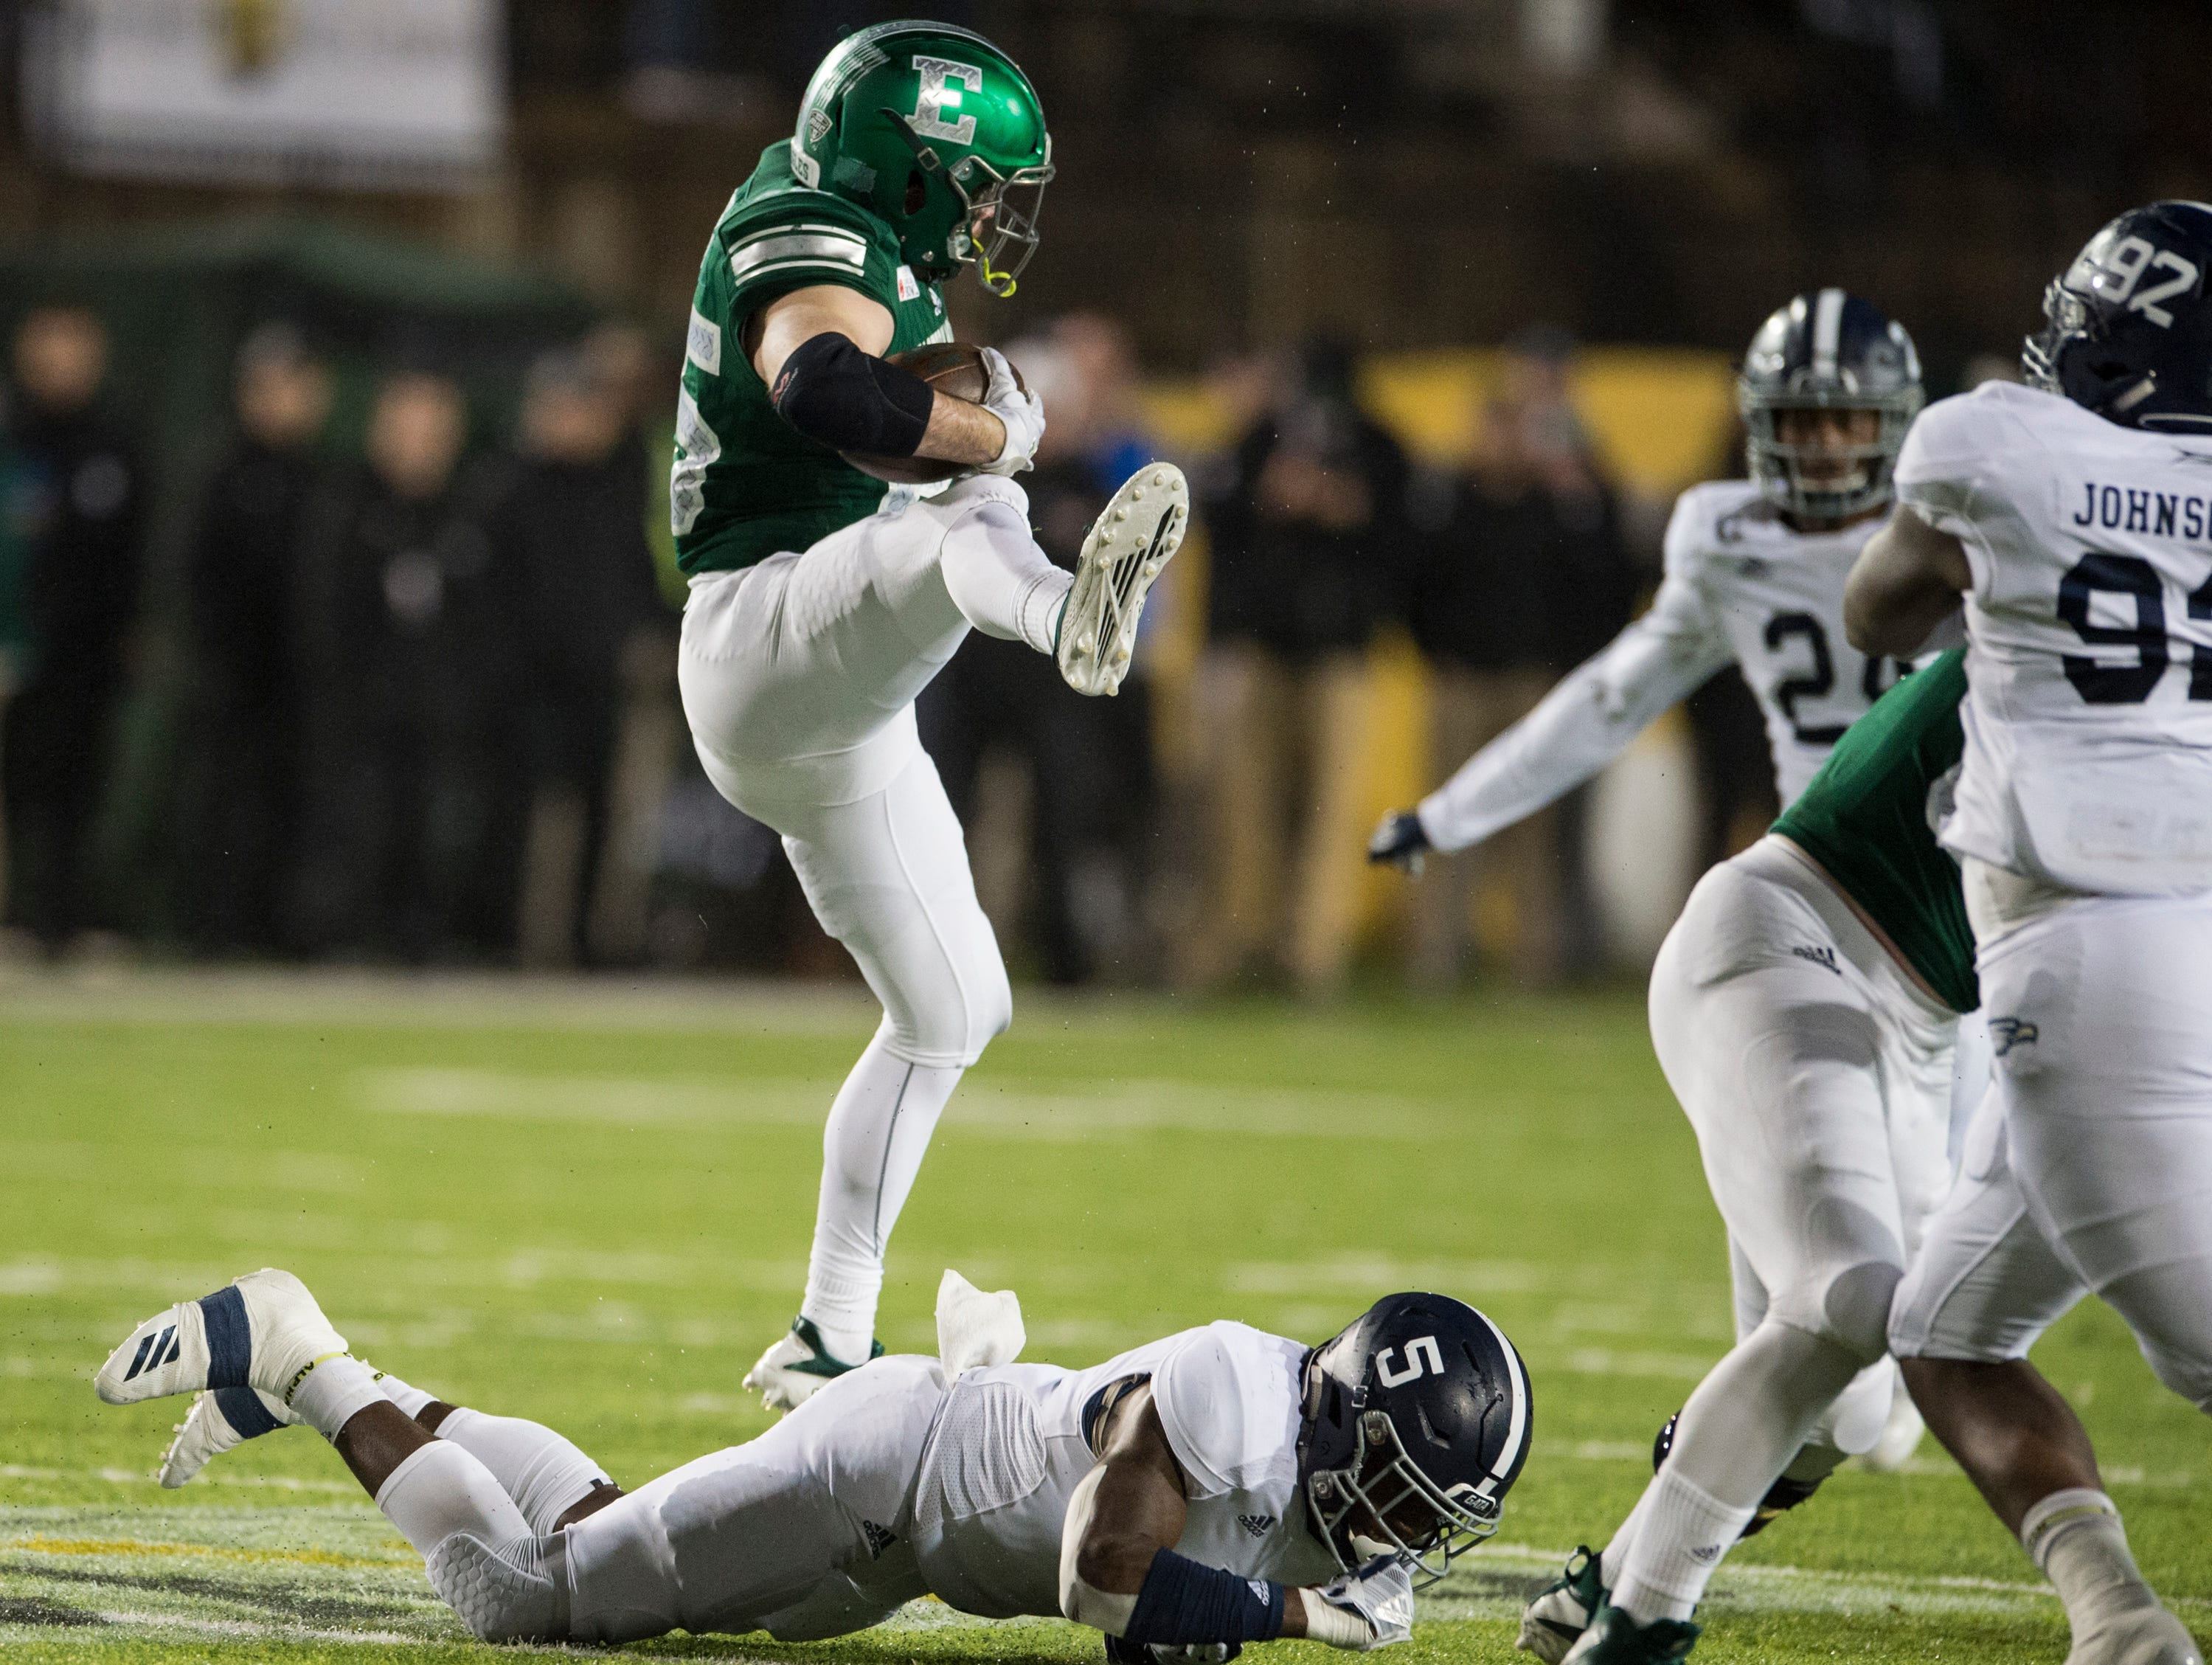 Eastern Michigan running back Ian Eriksen (25) hurdles Georgia Southern safety Jay Bowdry (5) during the Camellia Bowl at Cramton Bowl in Montgomery, Ala., on Saturday, Dec. 15, 2018. Georgia Southern defeated Eastern Michigan 23-21.